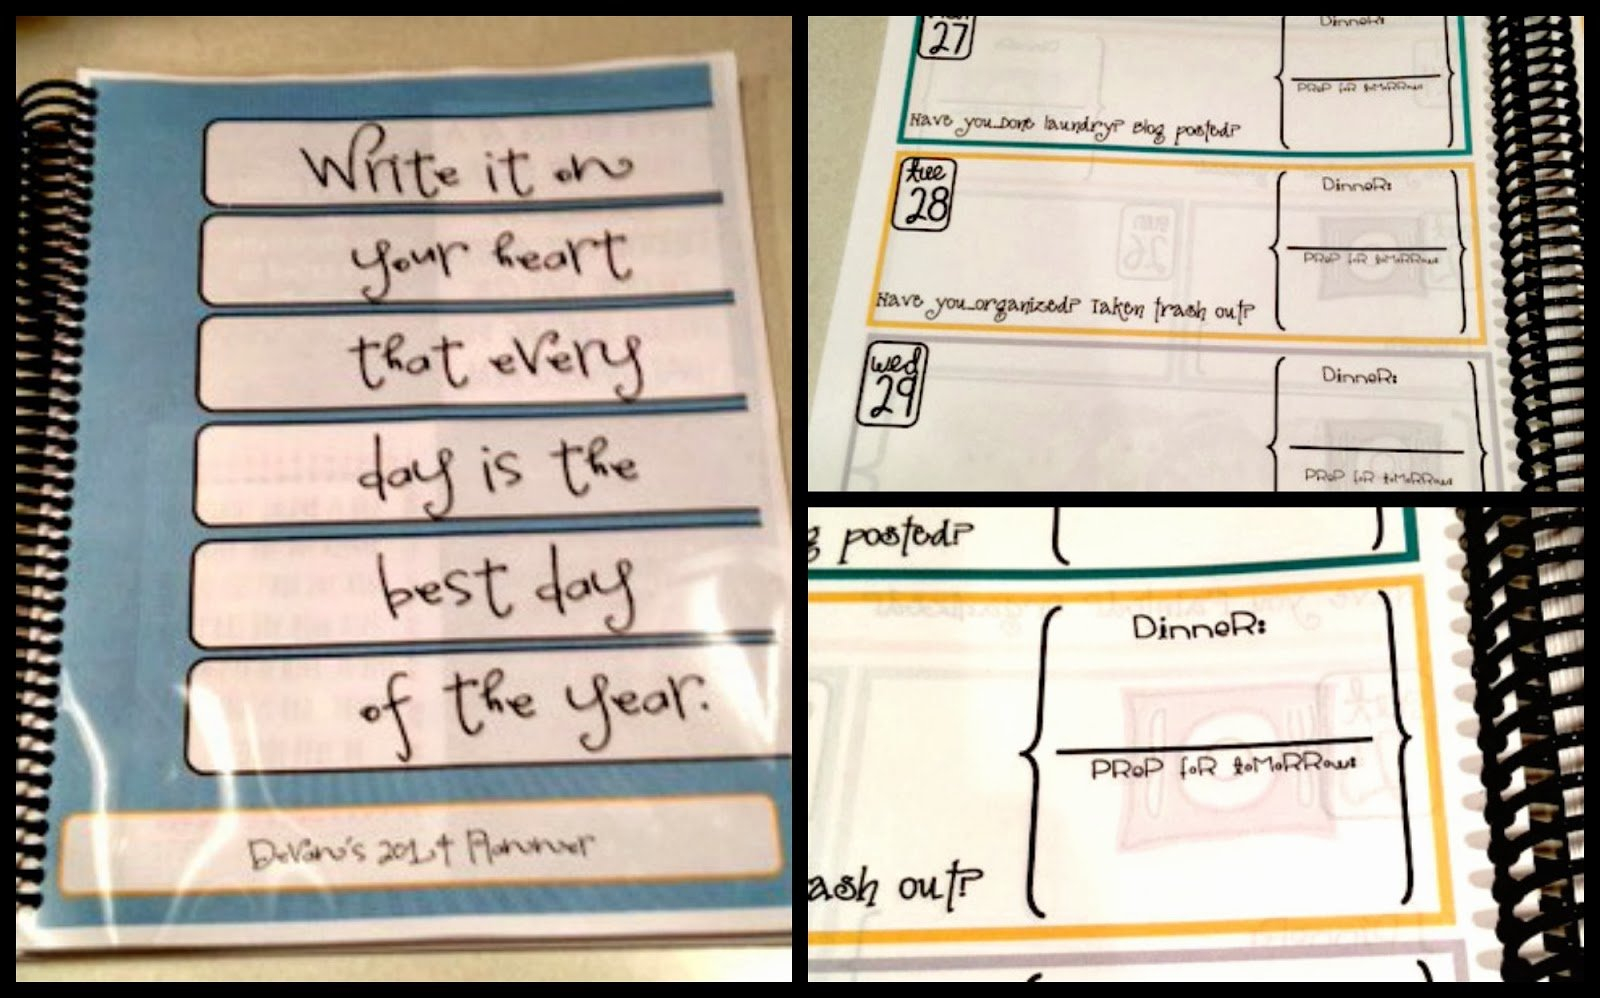 The Super Messy Supermommy: Personalized Planner. in Where Can I Print My Own Planner Graphics